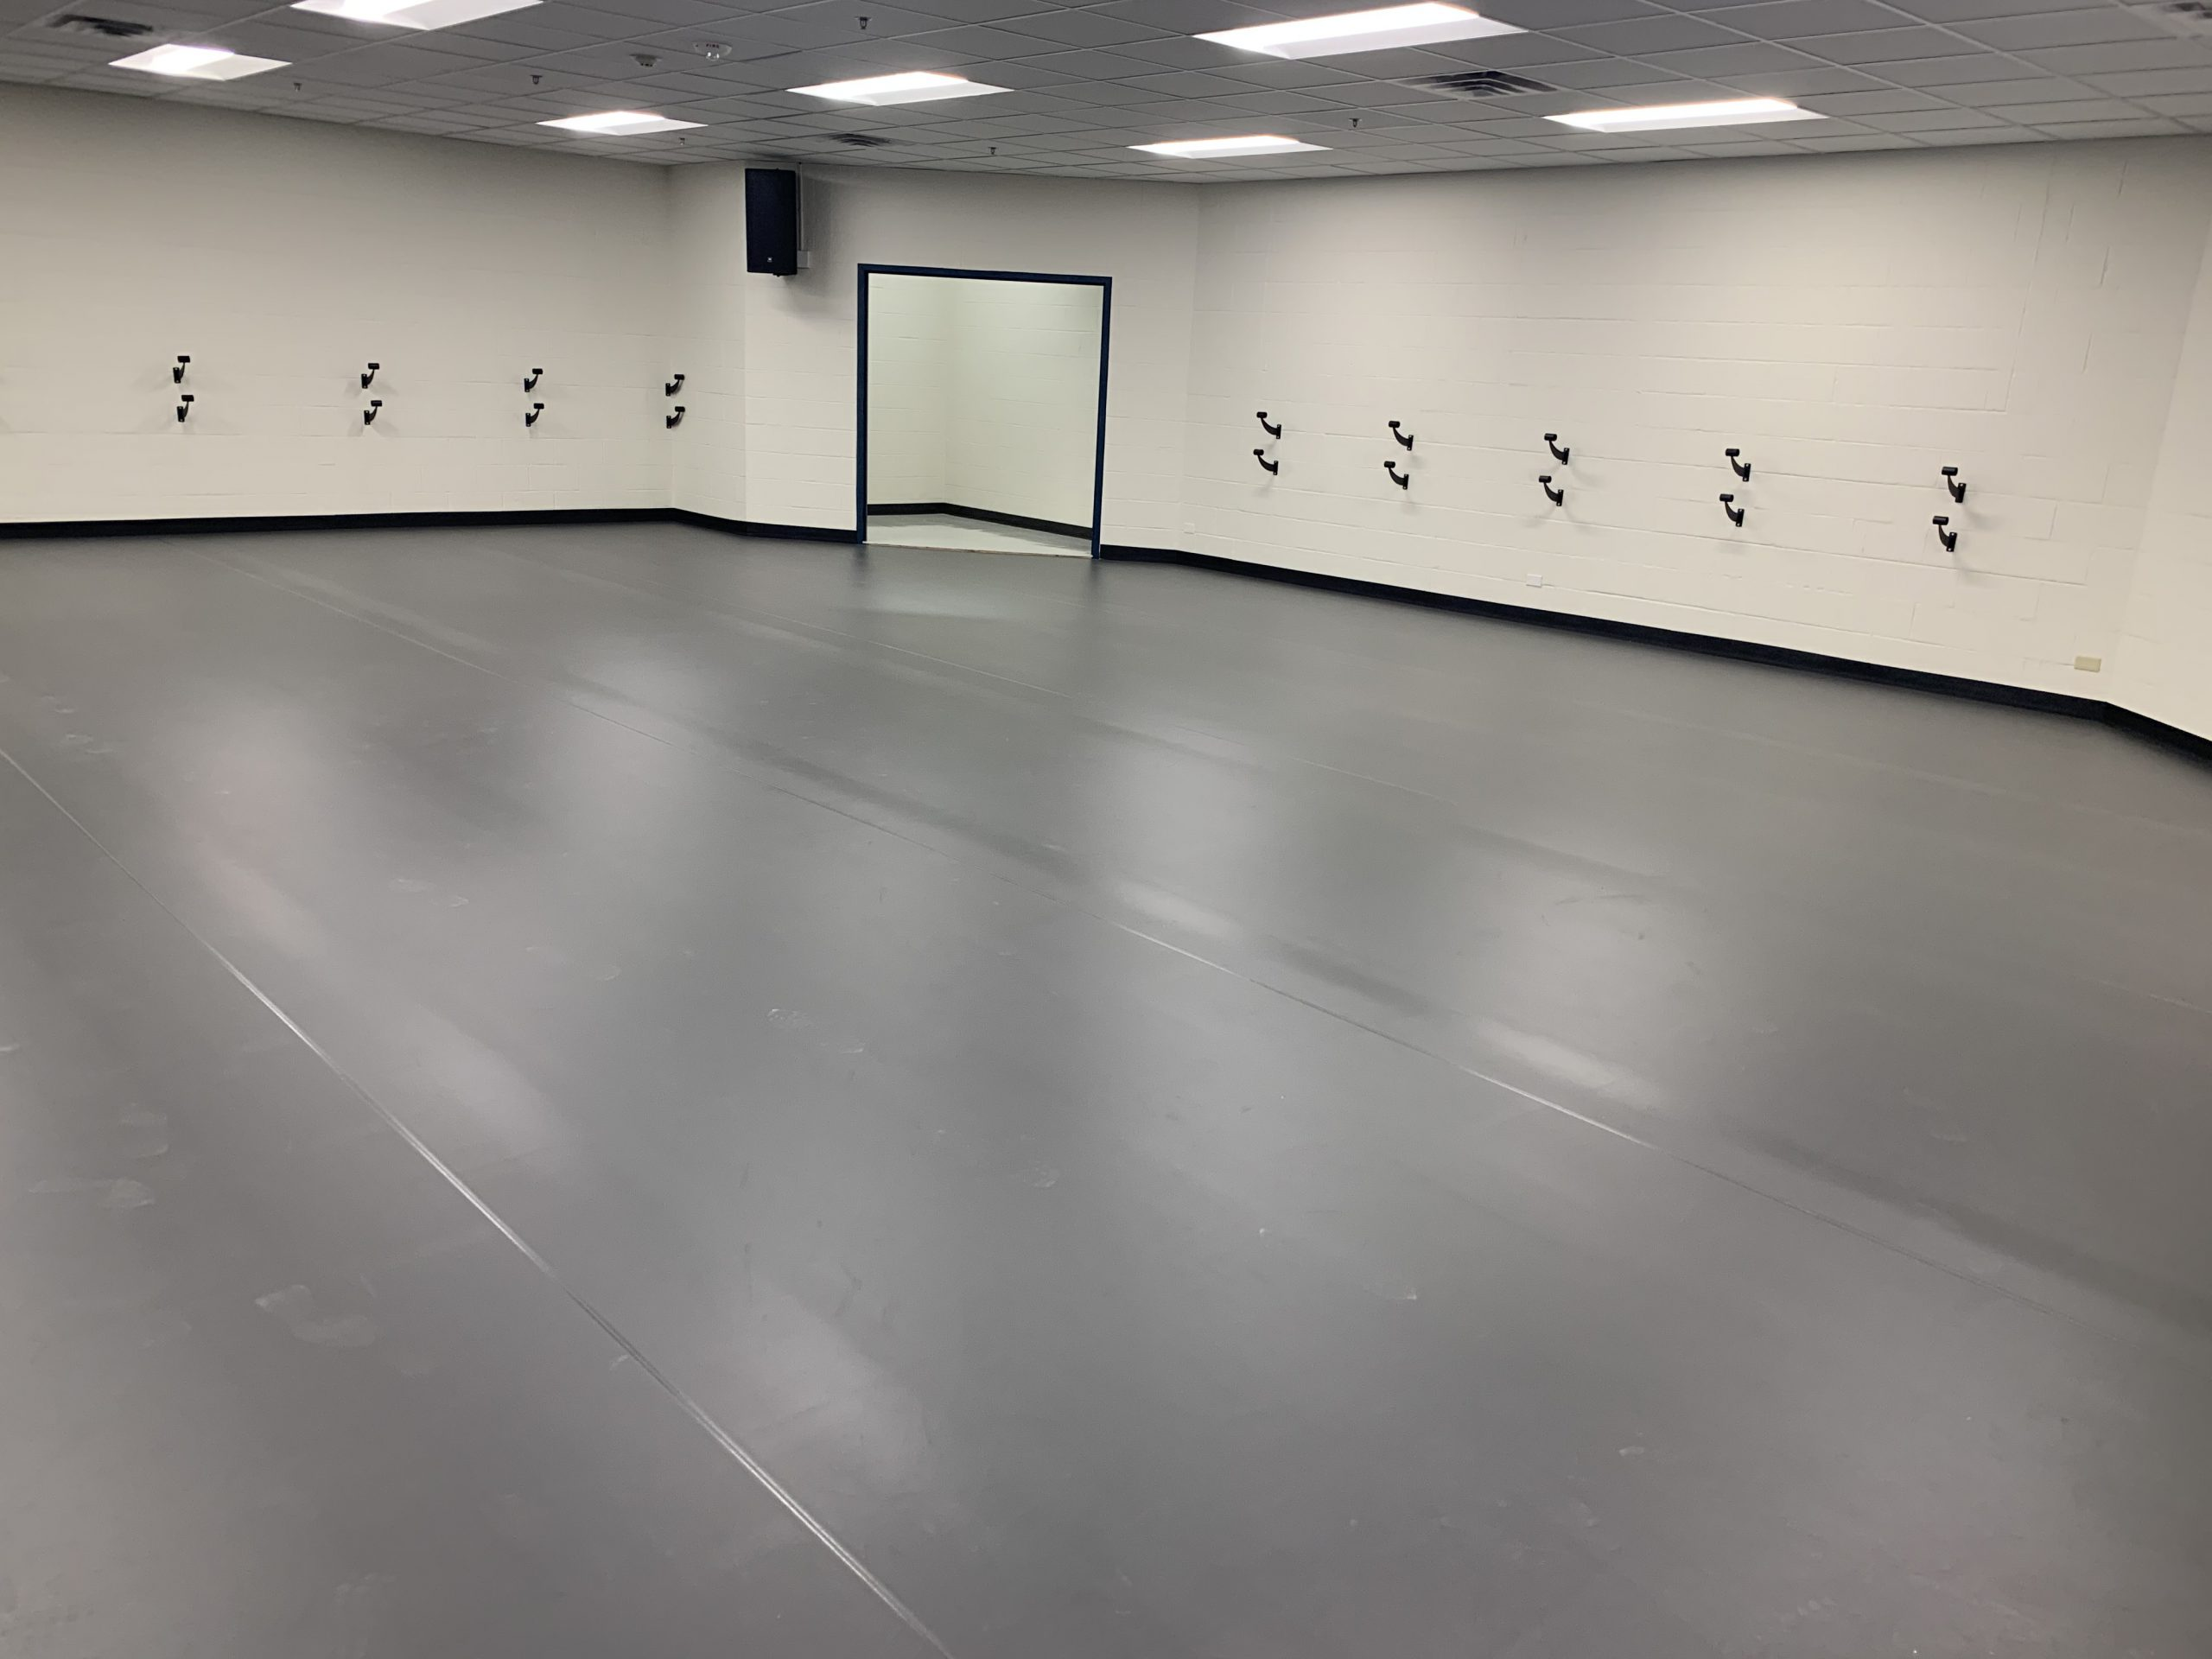 Ready for Dancers! image 1